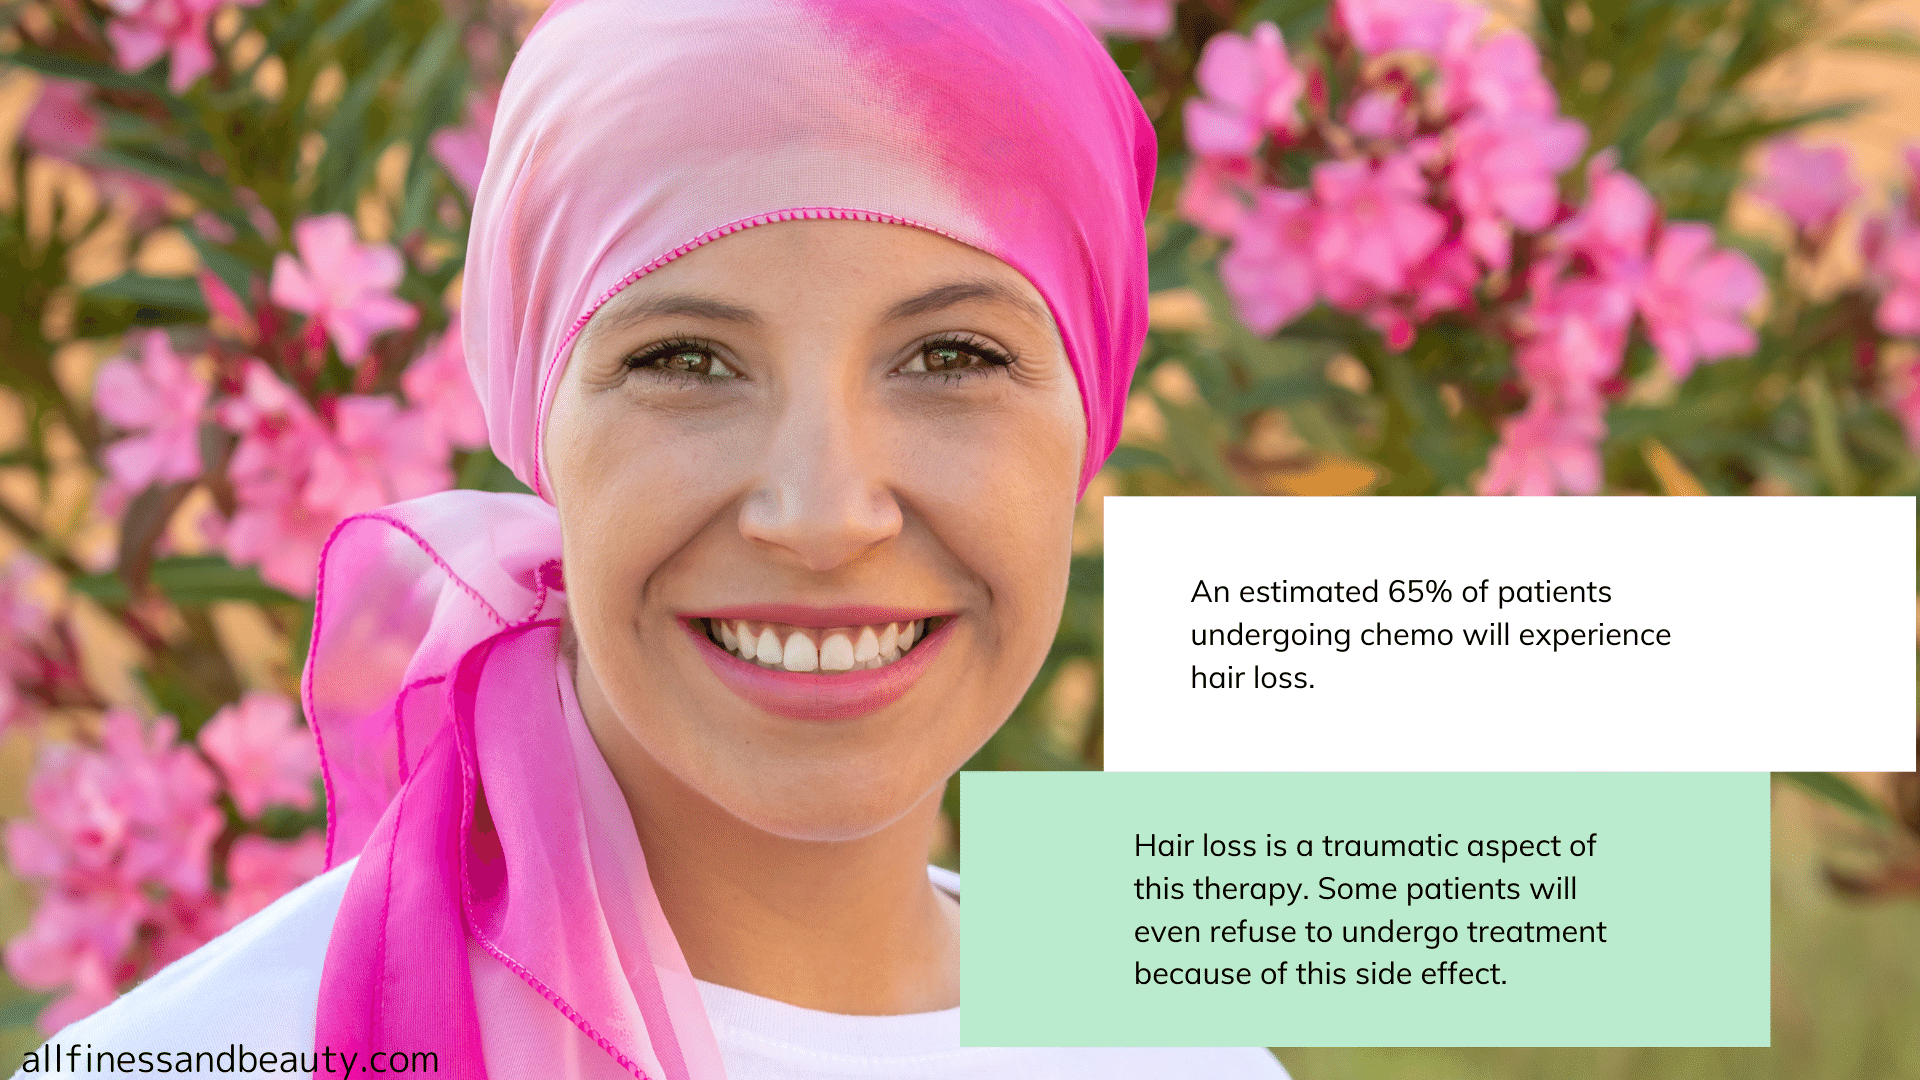 how many patients will experience hair loss after chemo